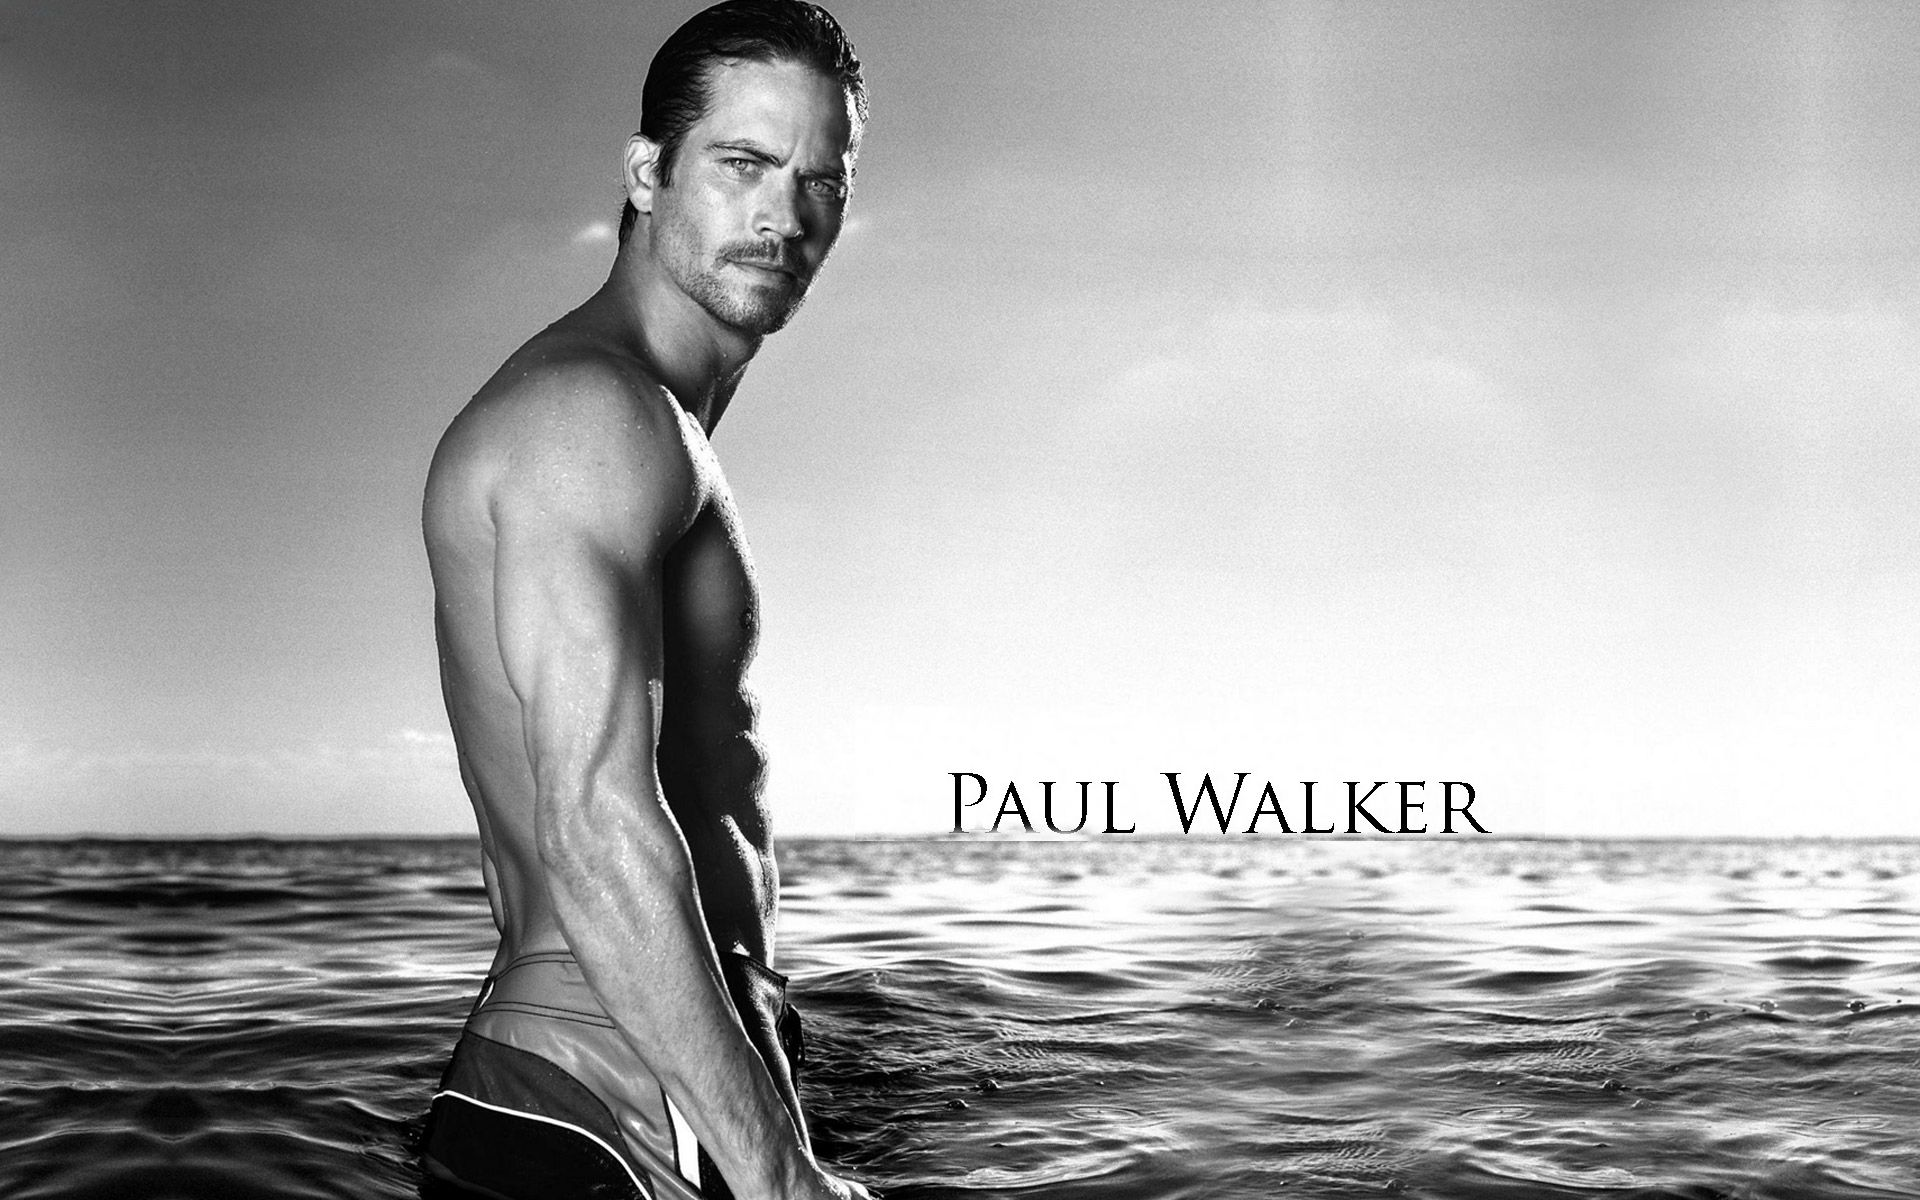 paul walker on the beach black and white photo edited wallpaper hd